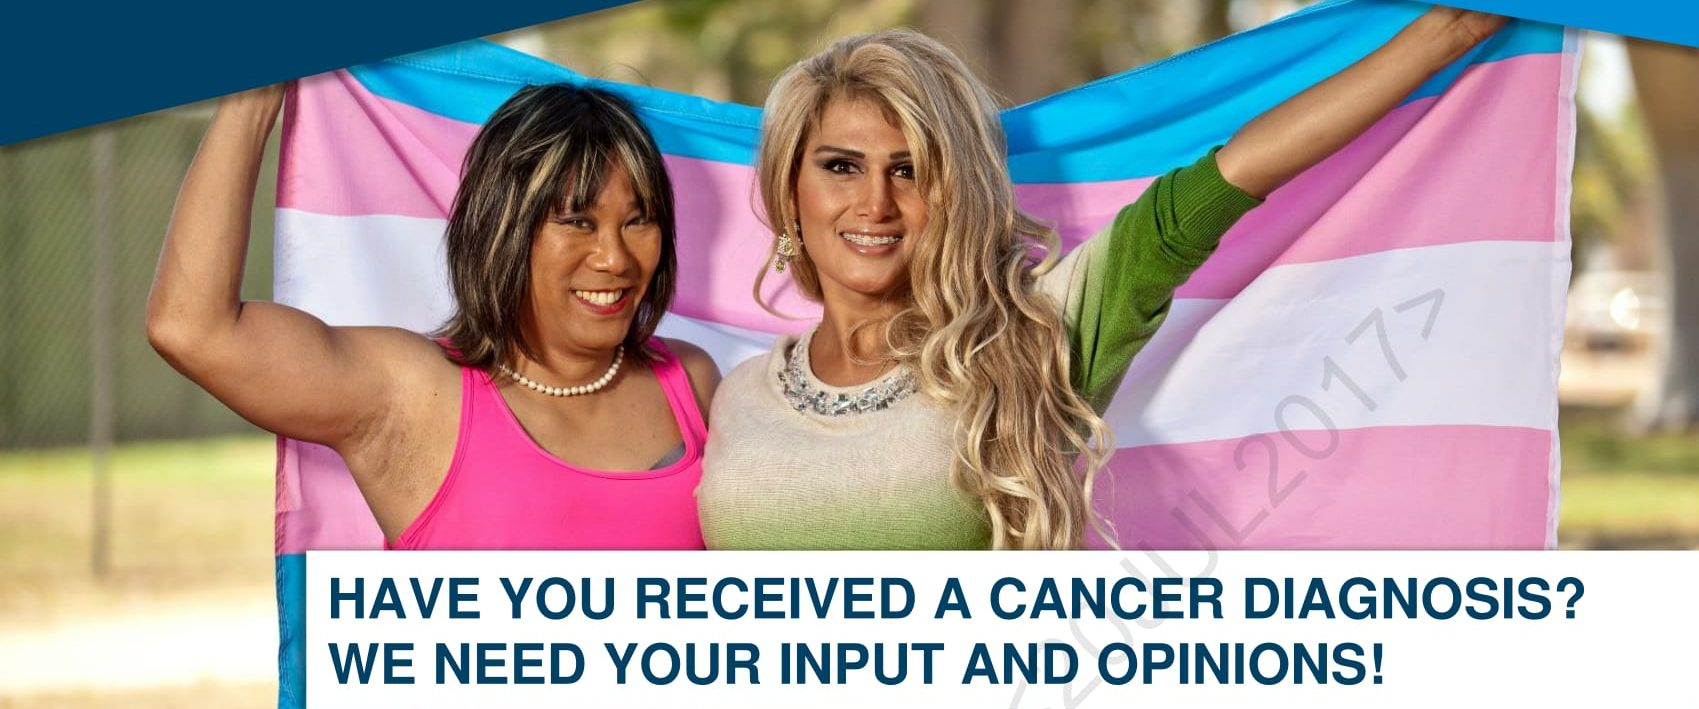 LGBT Cancer Project